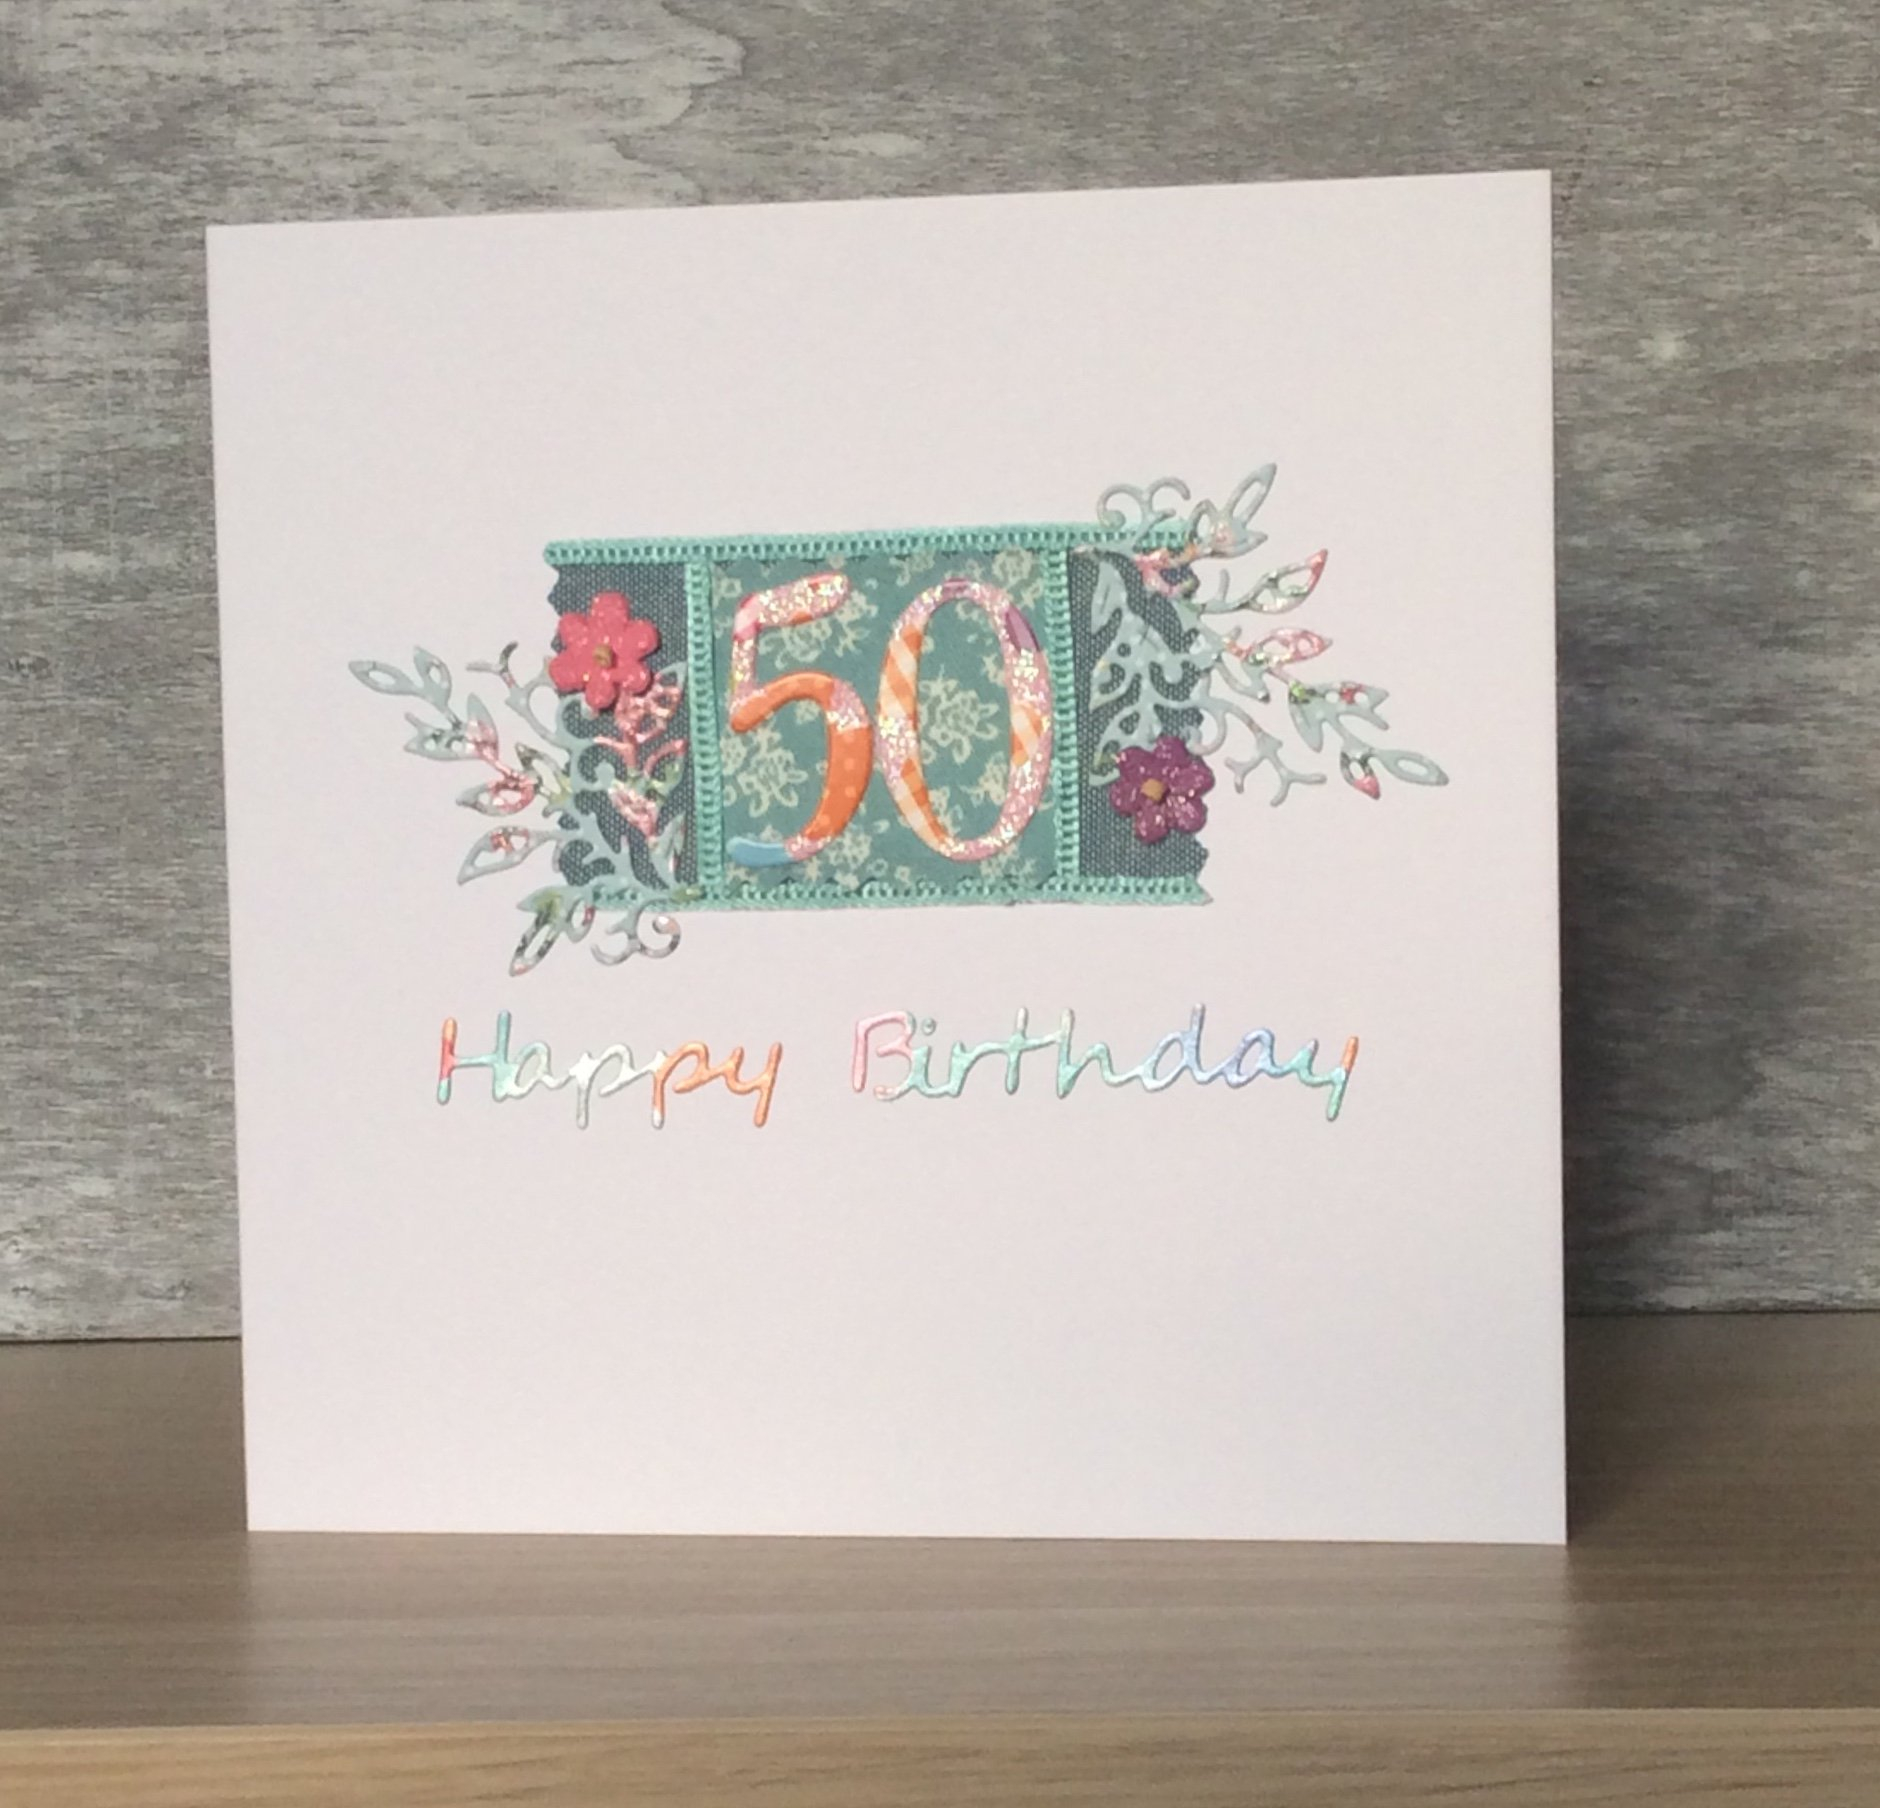 Handmade 50Th Birthday Card Ideas Handmade Greeting Cards Pretty Birthday Cards Using Teal Coloured Ribbons 50th 60th And 70th